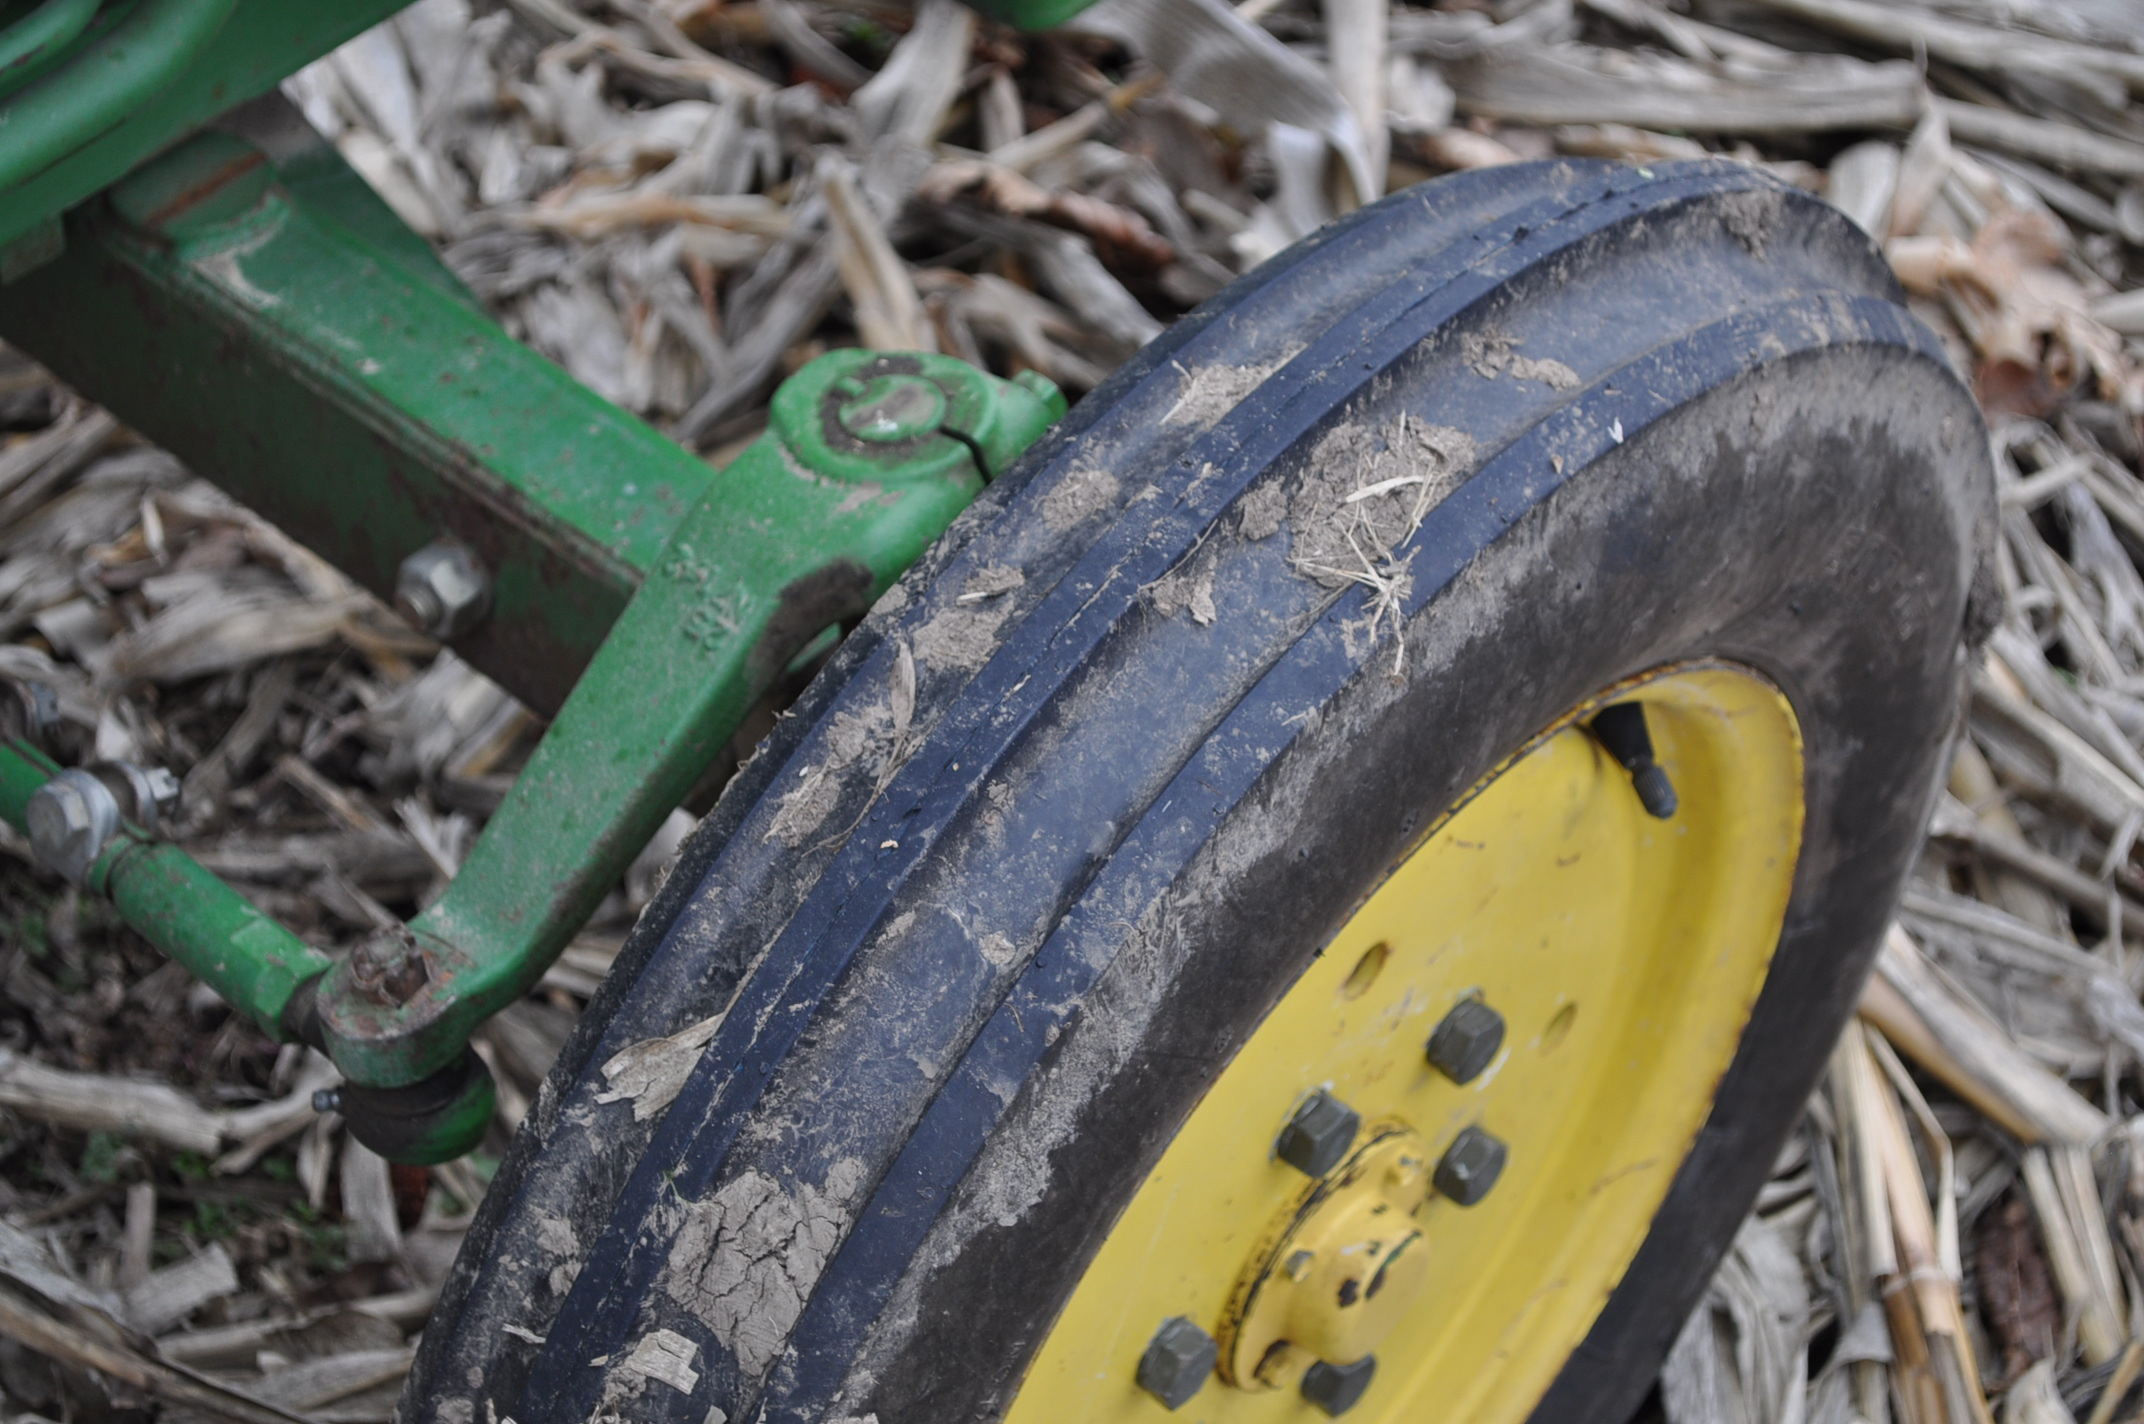 John Deere 850 utility tractor, diesel, 12.4-24 rear, 5.00-16 front, 2 hyd remotes, 3 pt, 540 pto, - Image 8 of 13